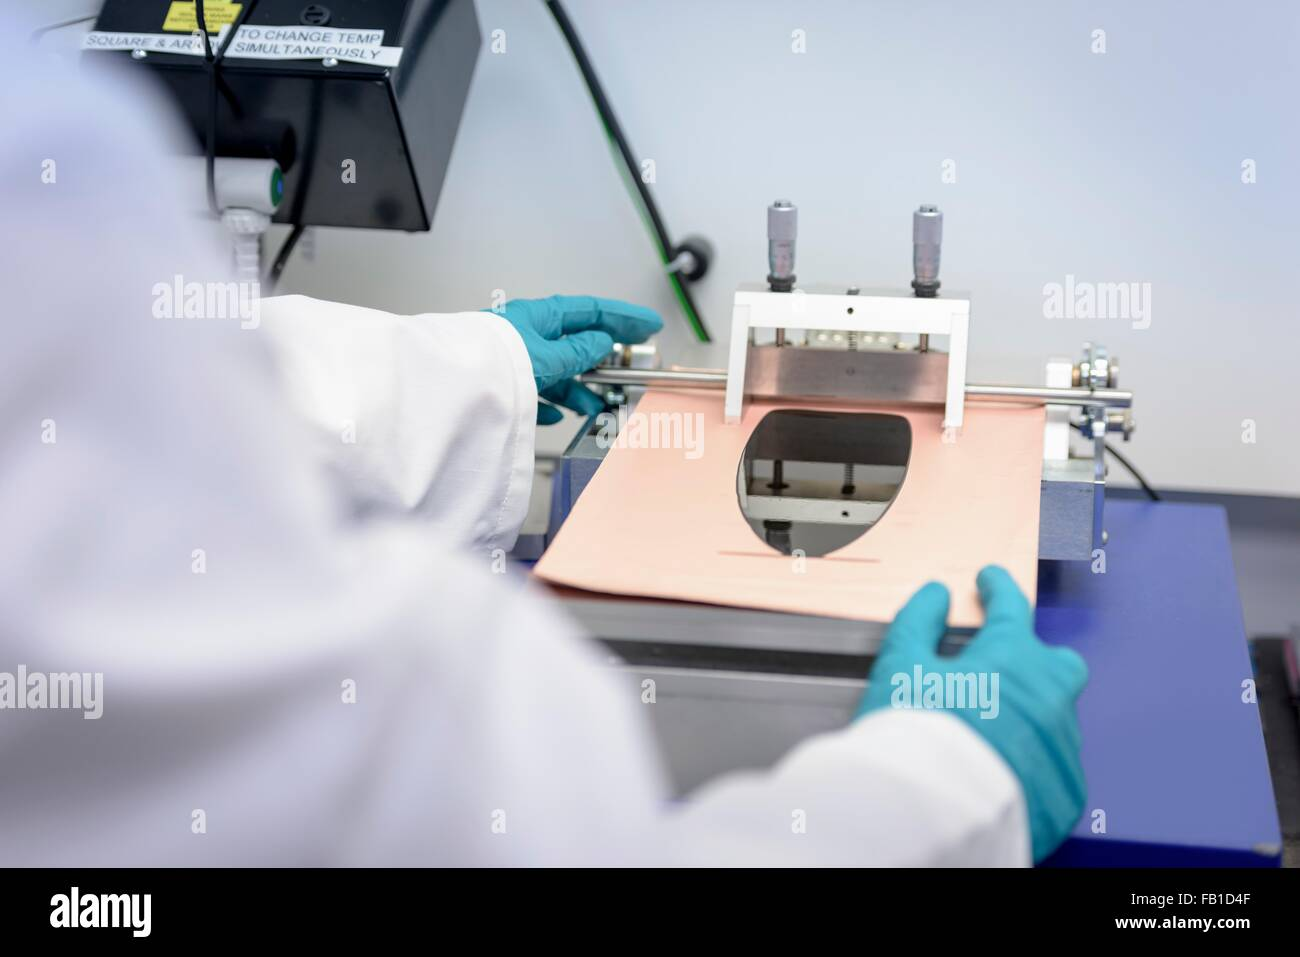 Battery Lab Stock Photos Images Alamy Integrated Circuitvintage Scientist Making Lithium Ion Samples In Research Facility Close Up Image